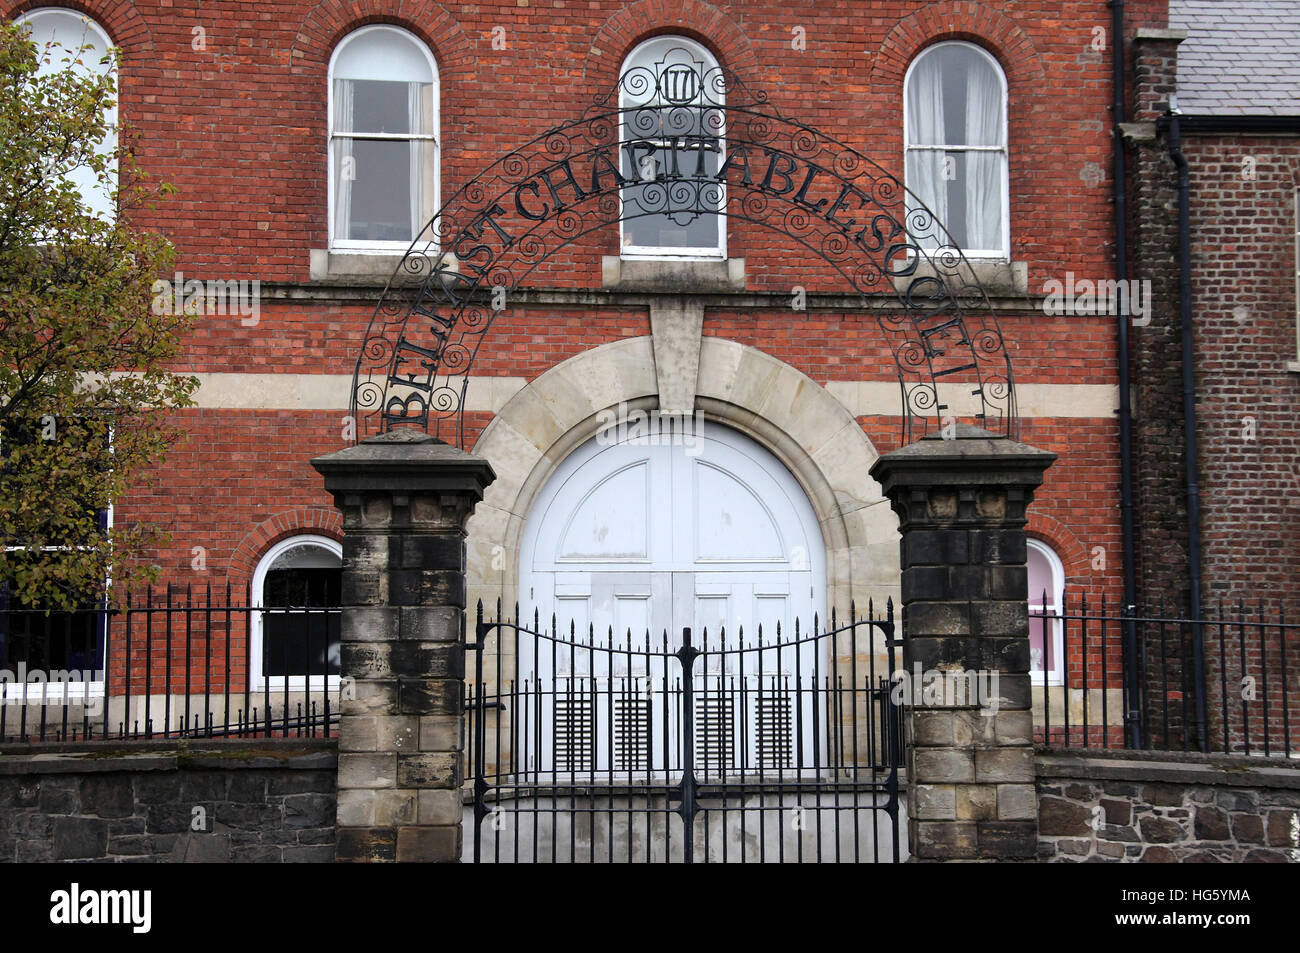 Belfast Charitable Society in Northern Ireland - Stock Image